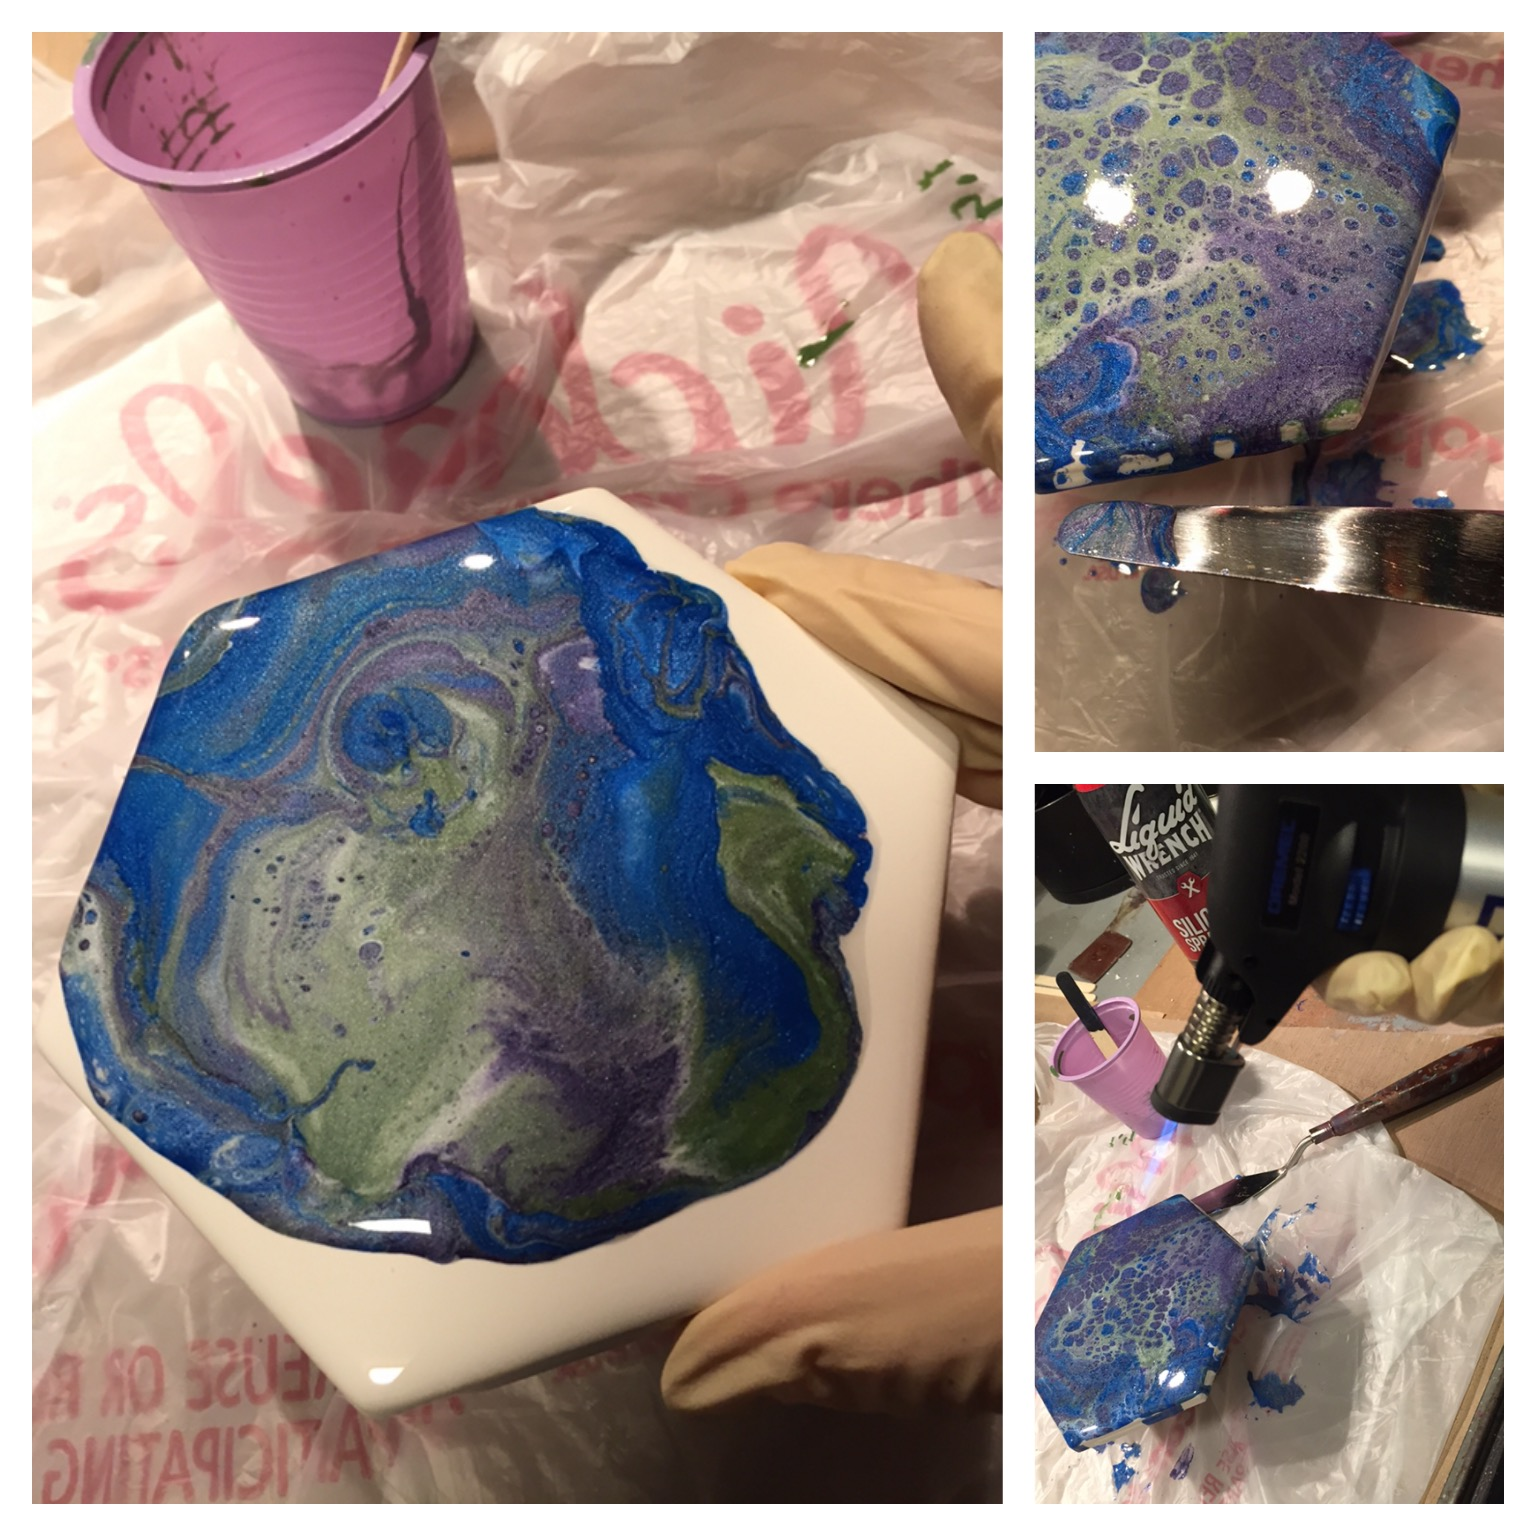 1. Cup lifted and paint is on the move. Watch for areas you want to preserve on your piece, tilting SLOWLY as needed. 2. Using a palette knife, ensure the edges are coated with paint, adding the run-off from the pour. 3. A torch is not always needed, but I gave this a blast hoping for more 'cell' action (sometimes it works, sometimes it doesn't - but I feel so uber cool using the torch!)